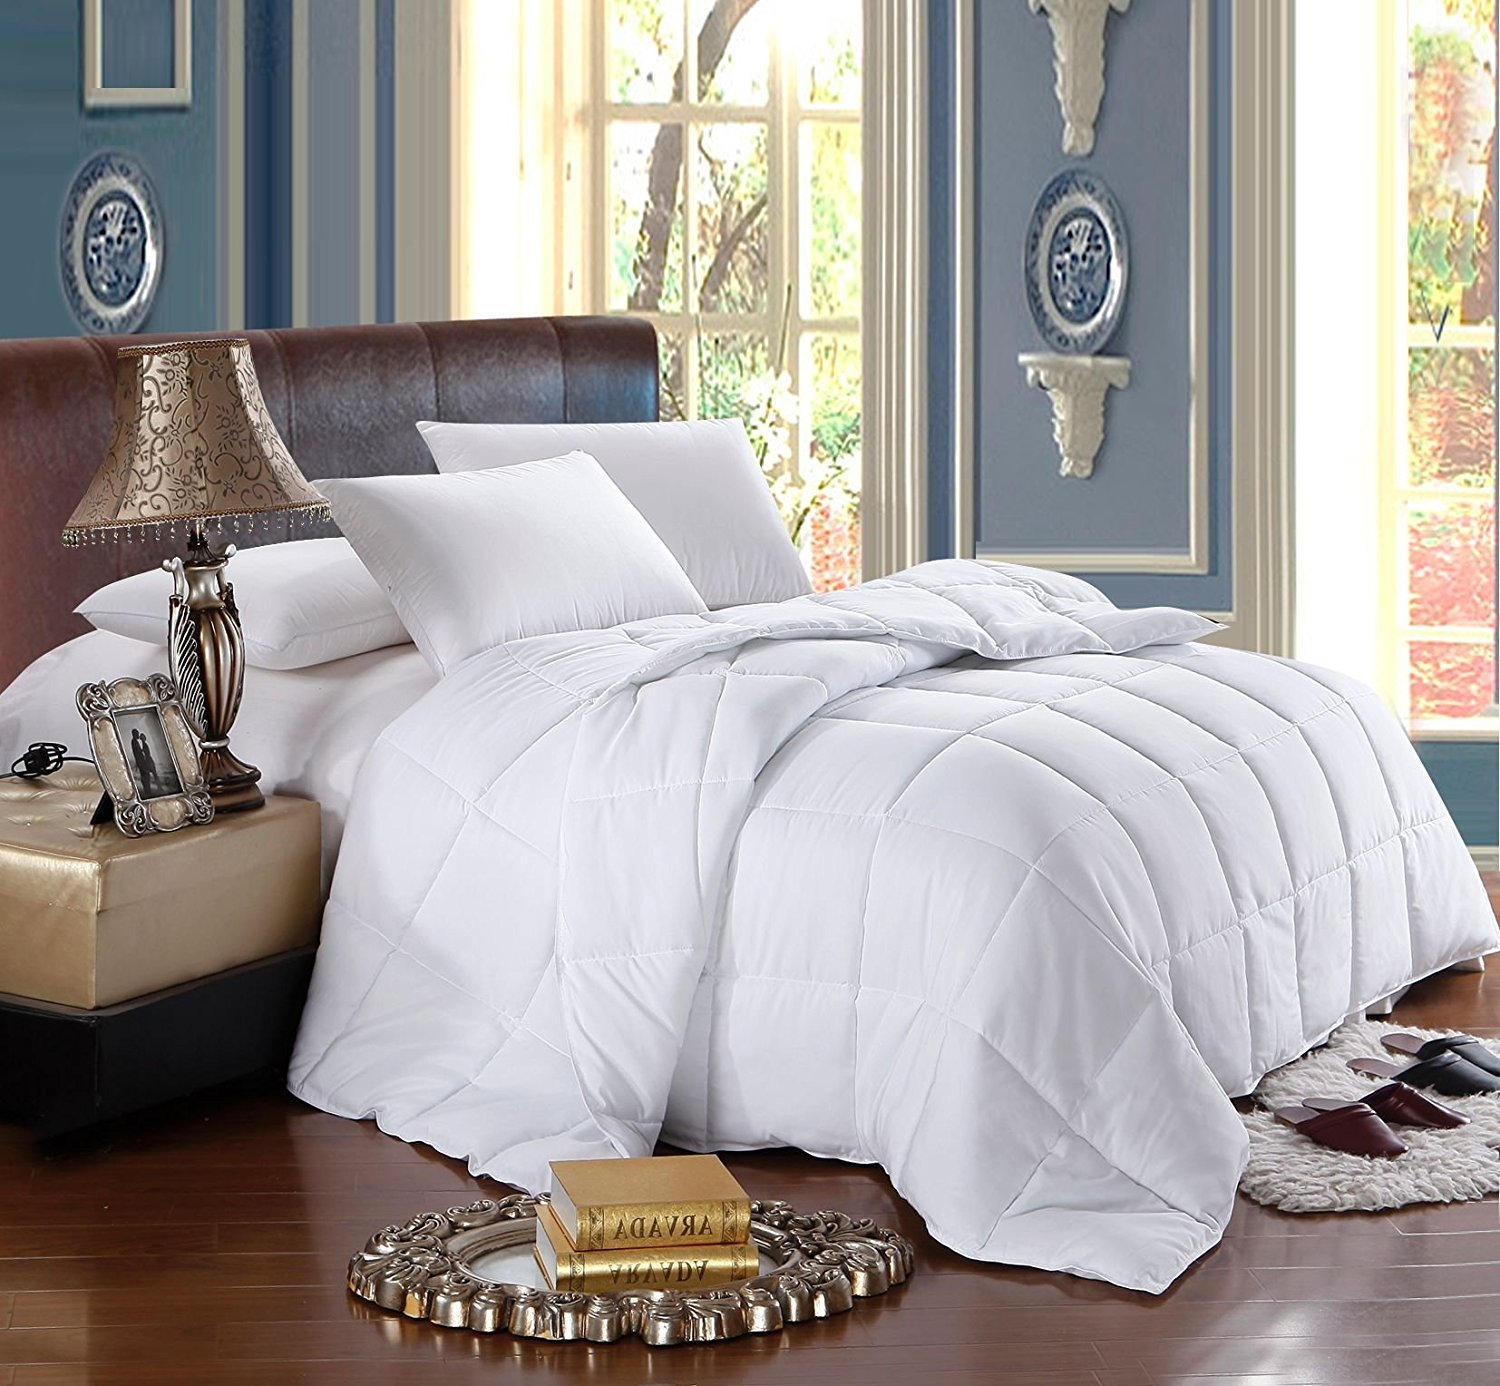 set bedding fresh size bedroom comforter wide residence on with sale king your design cal